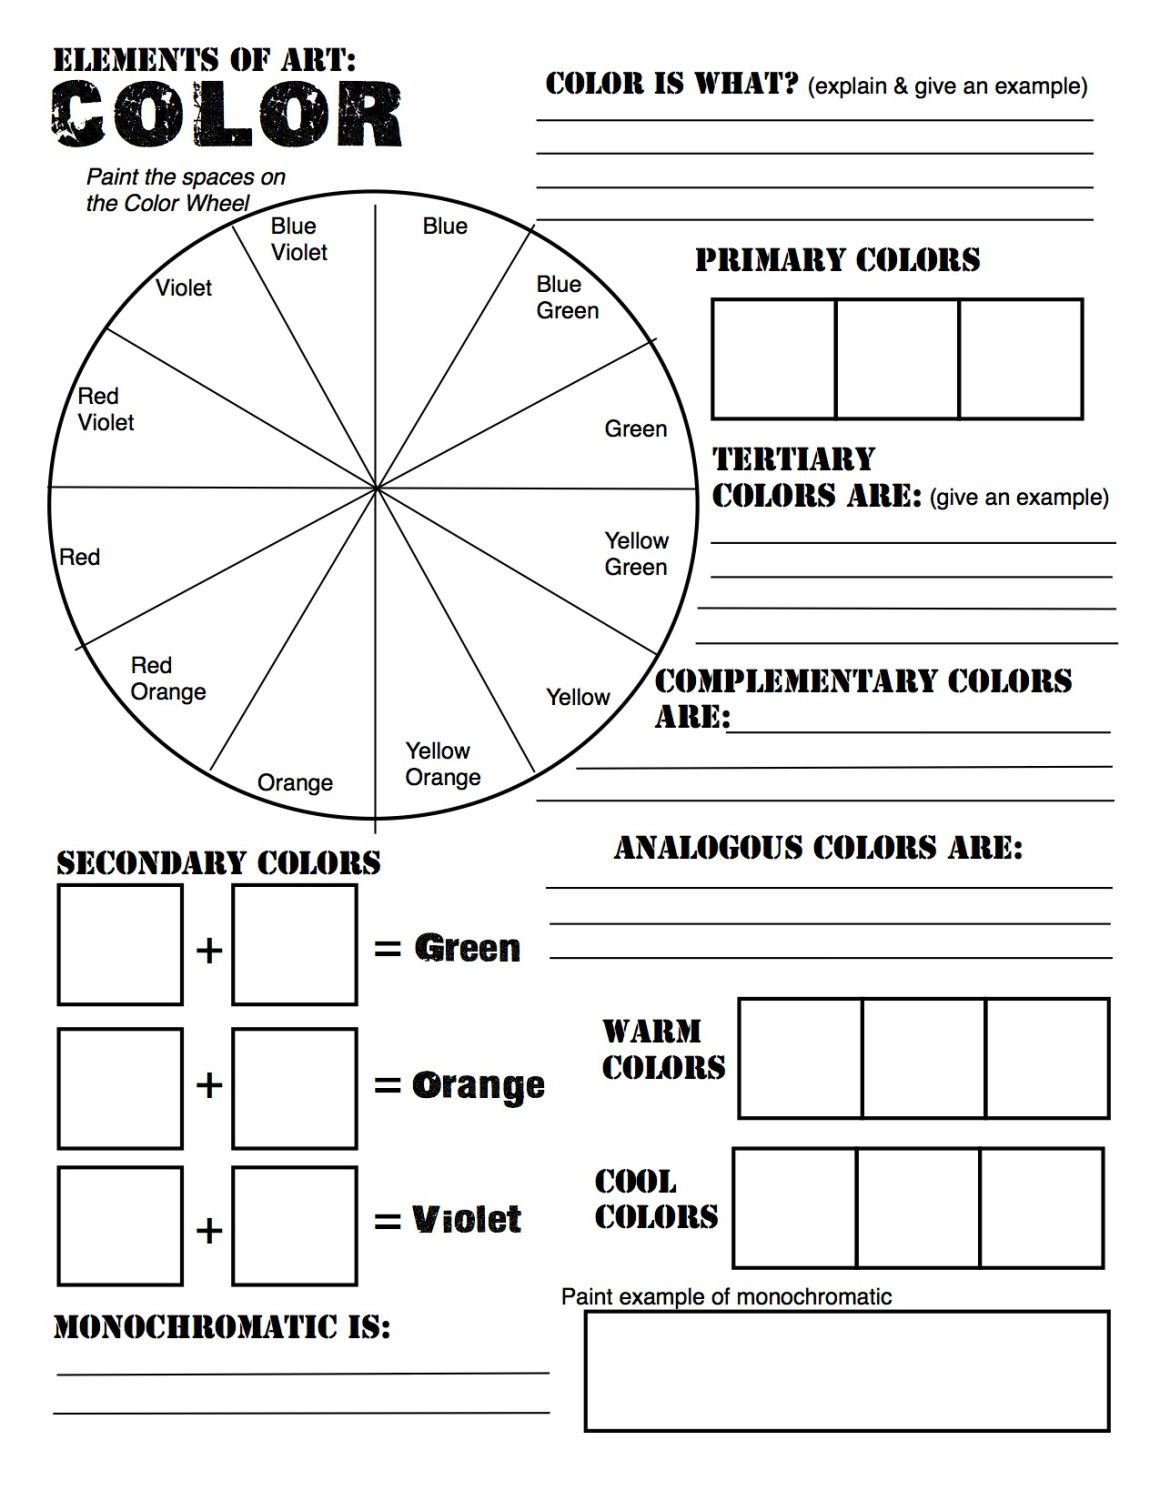 Graded Assignment Color Theory Worksheet